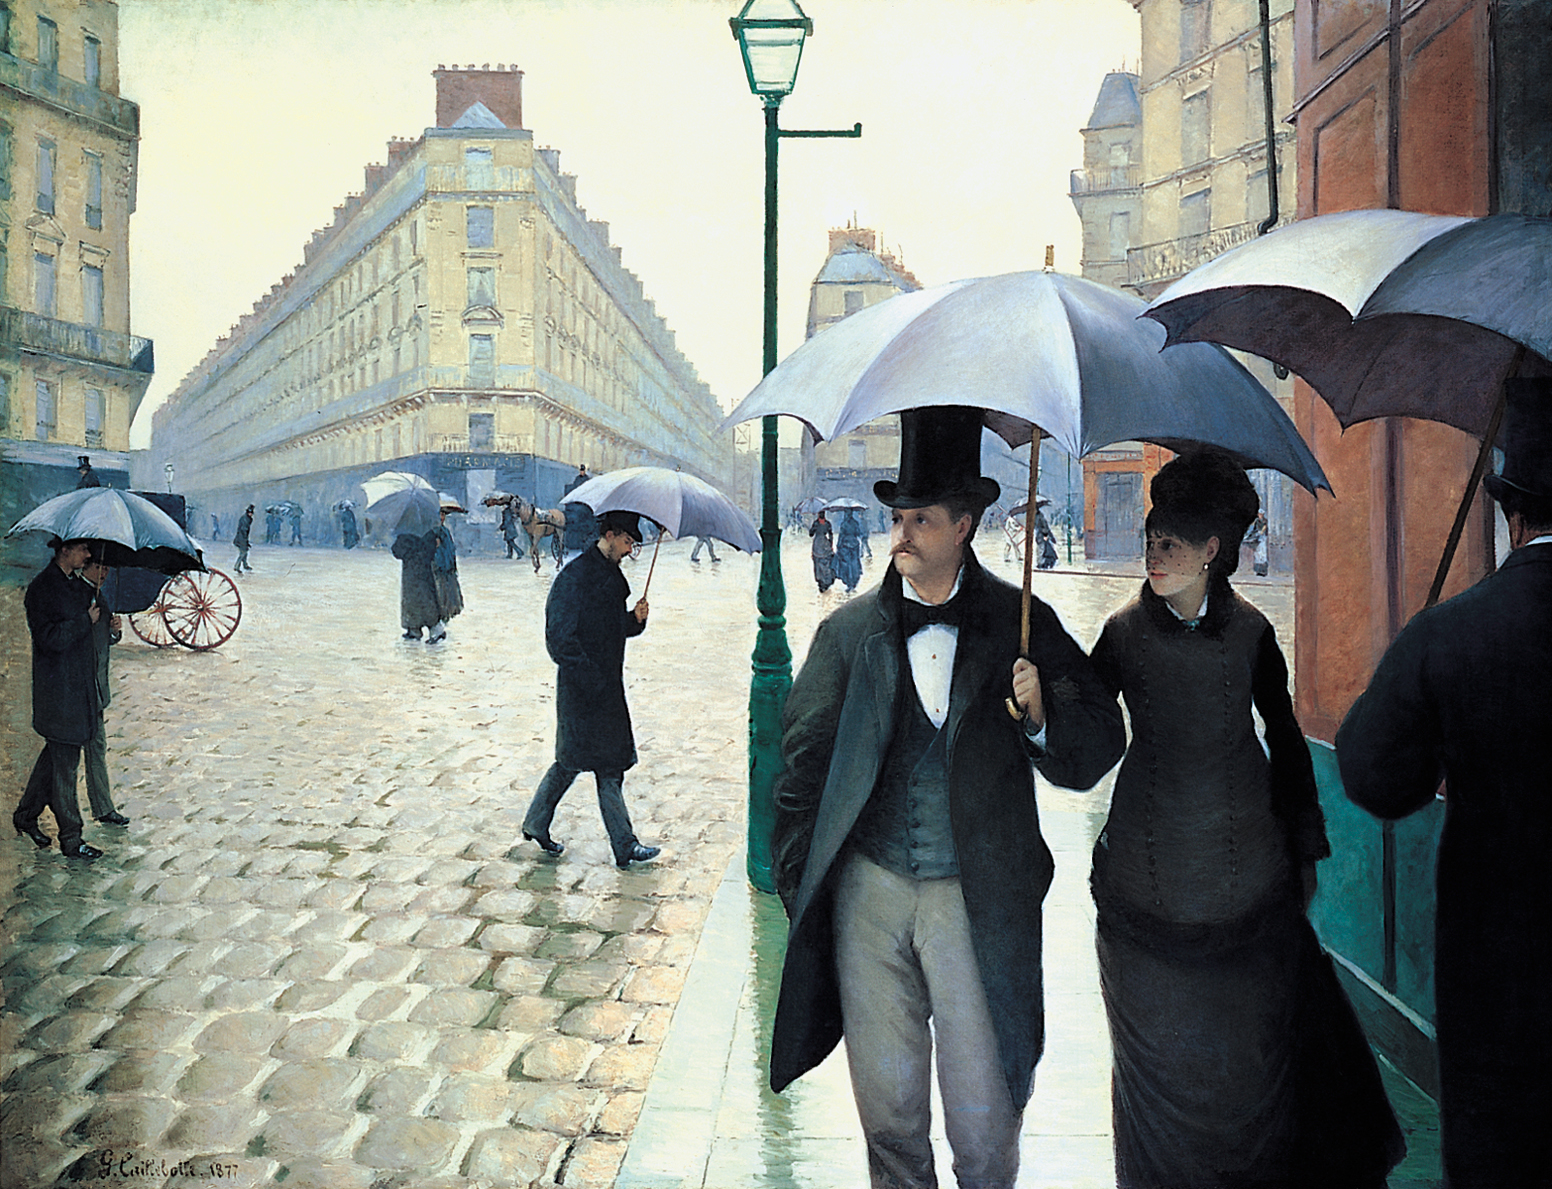 Gustave Caillebotte, Rue de Paris, Temps de Pluie, 1877, Art Institute of Chicago